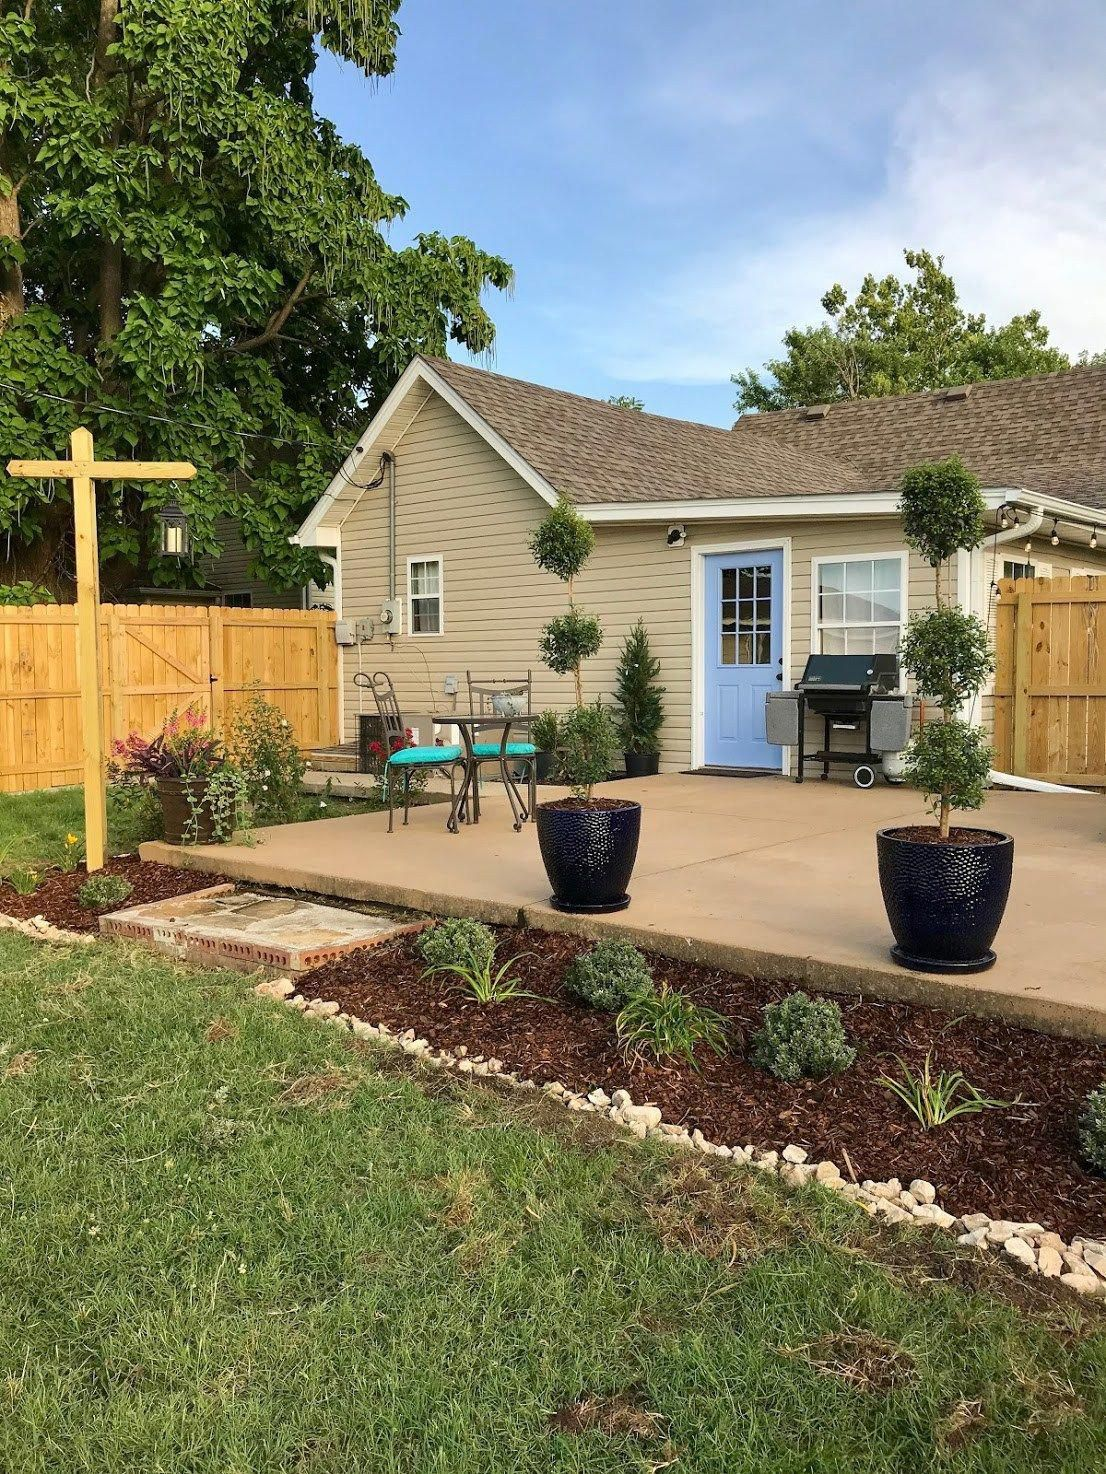 How She Transformed A Plain Backyard Into A Welcoming Garden Patio Oasis With Affordable Outdoor Furniture And Lots Of Plan Cottage Patio Patio Garden Backyard